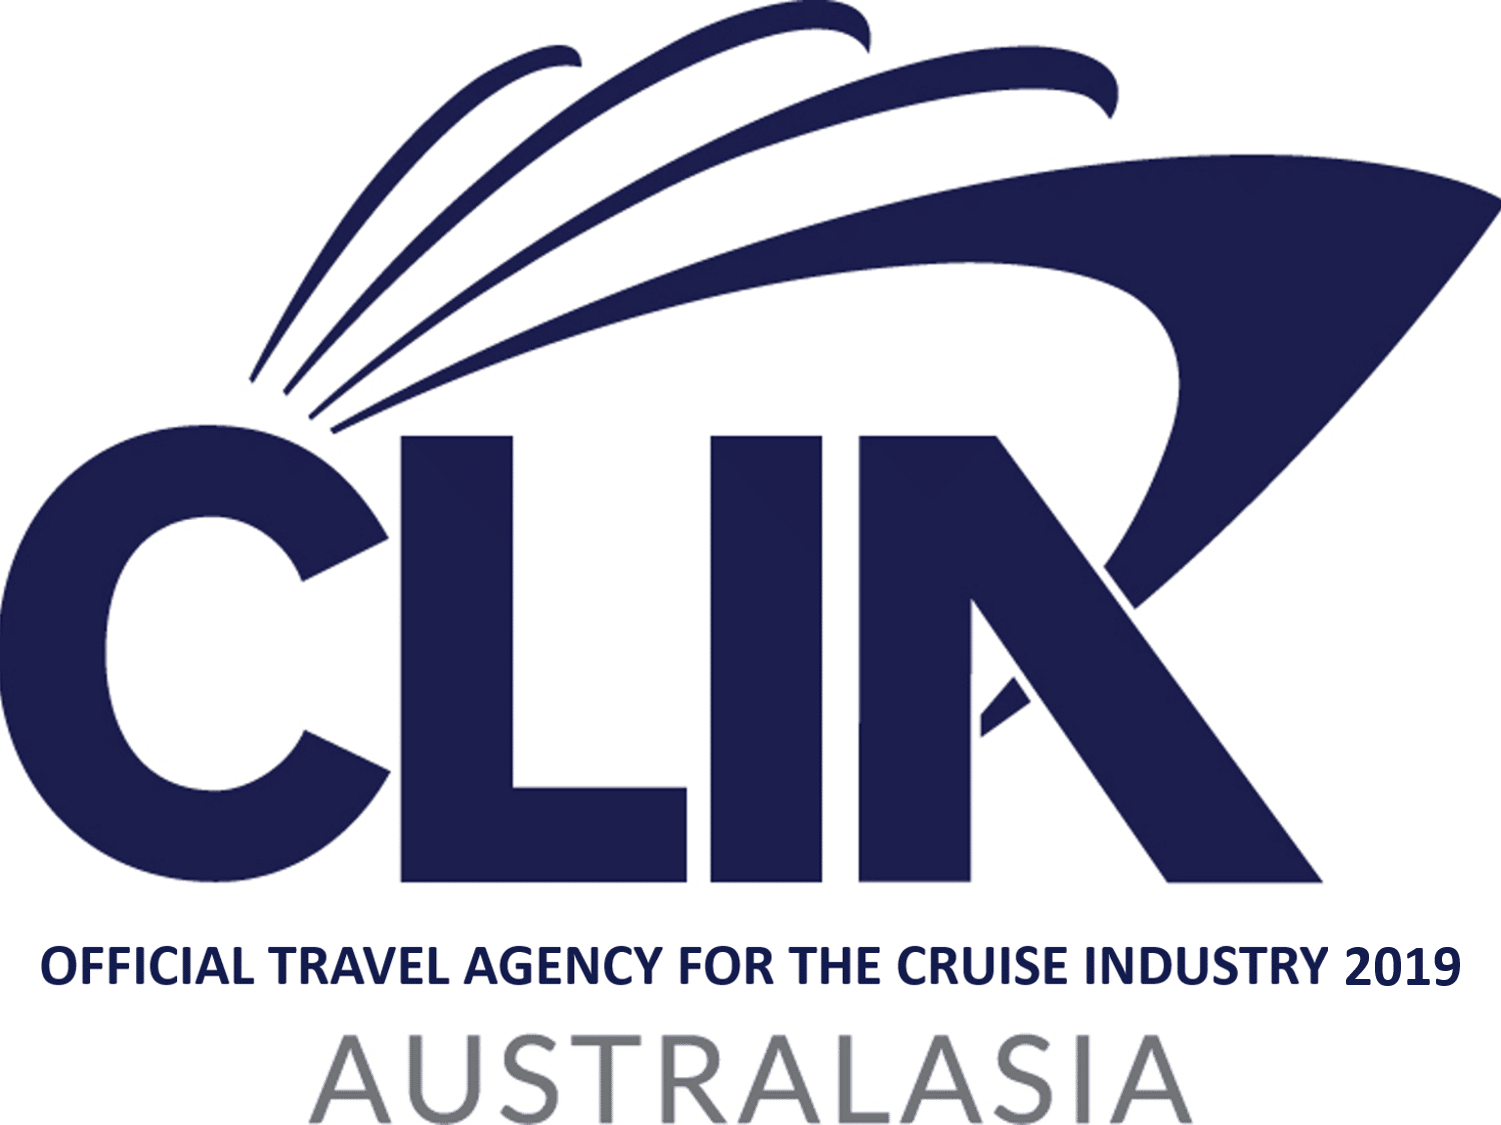 official-travel-agency-for-the-cruise-industry-2019